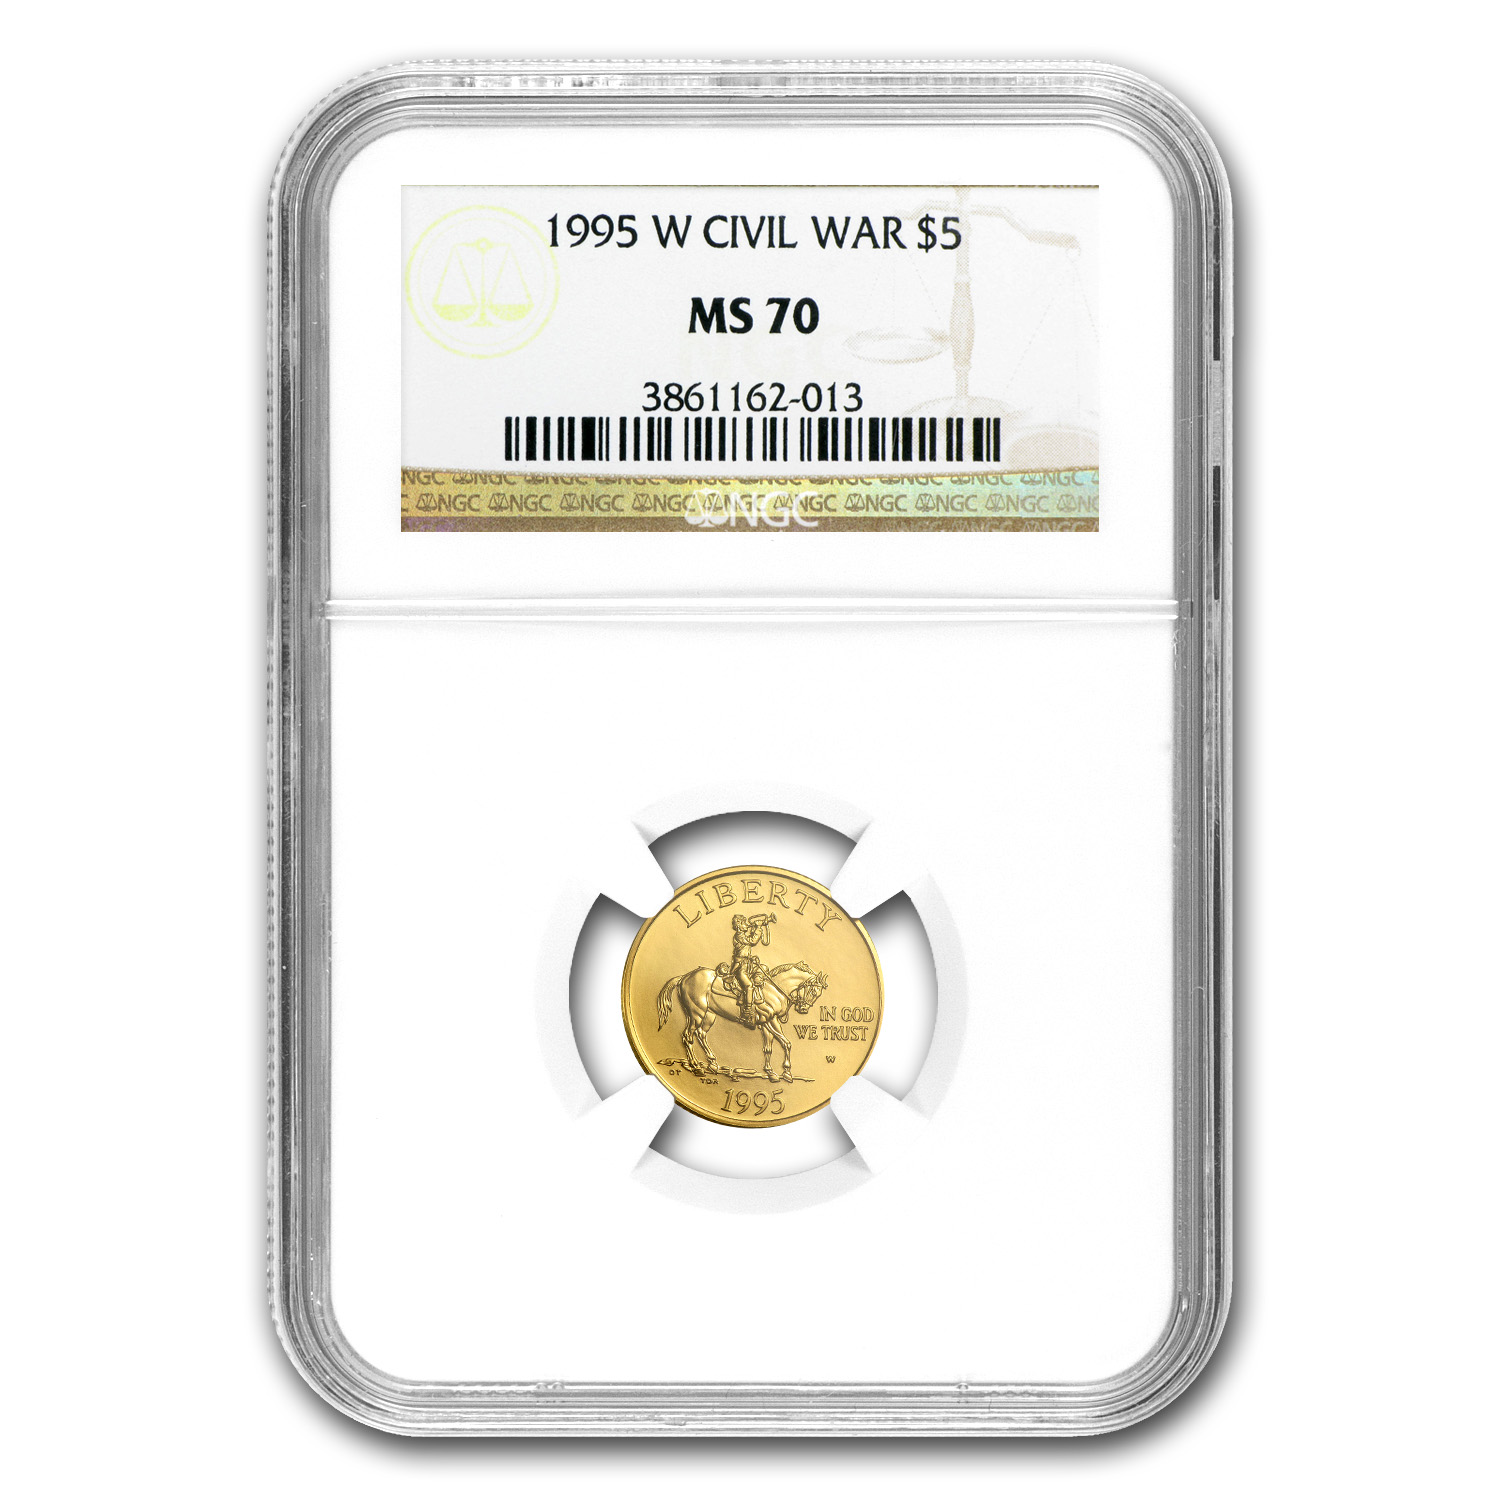 1995-W Gold $5 Commem Civil War MS-70 NGC